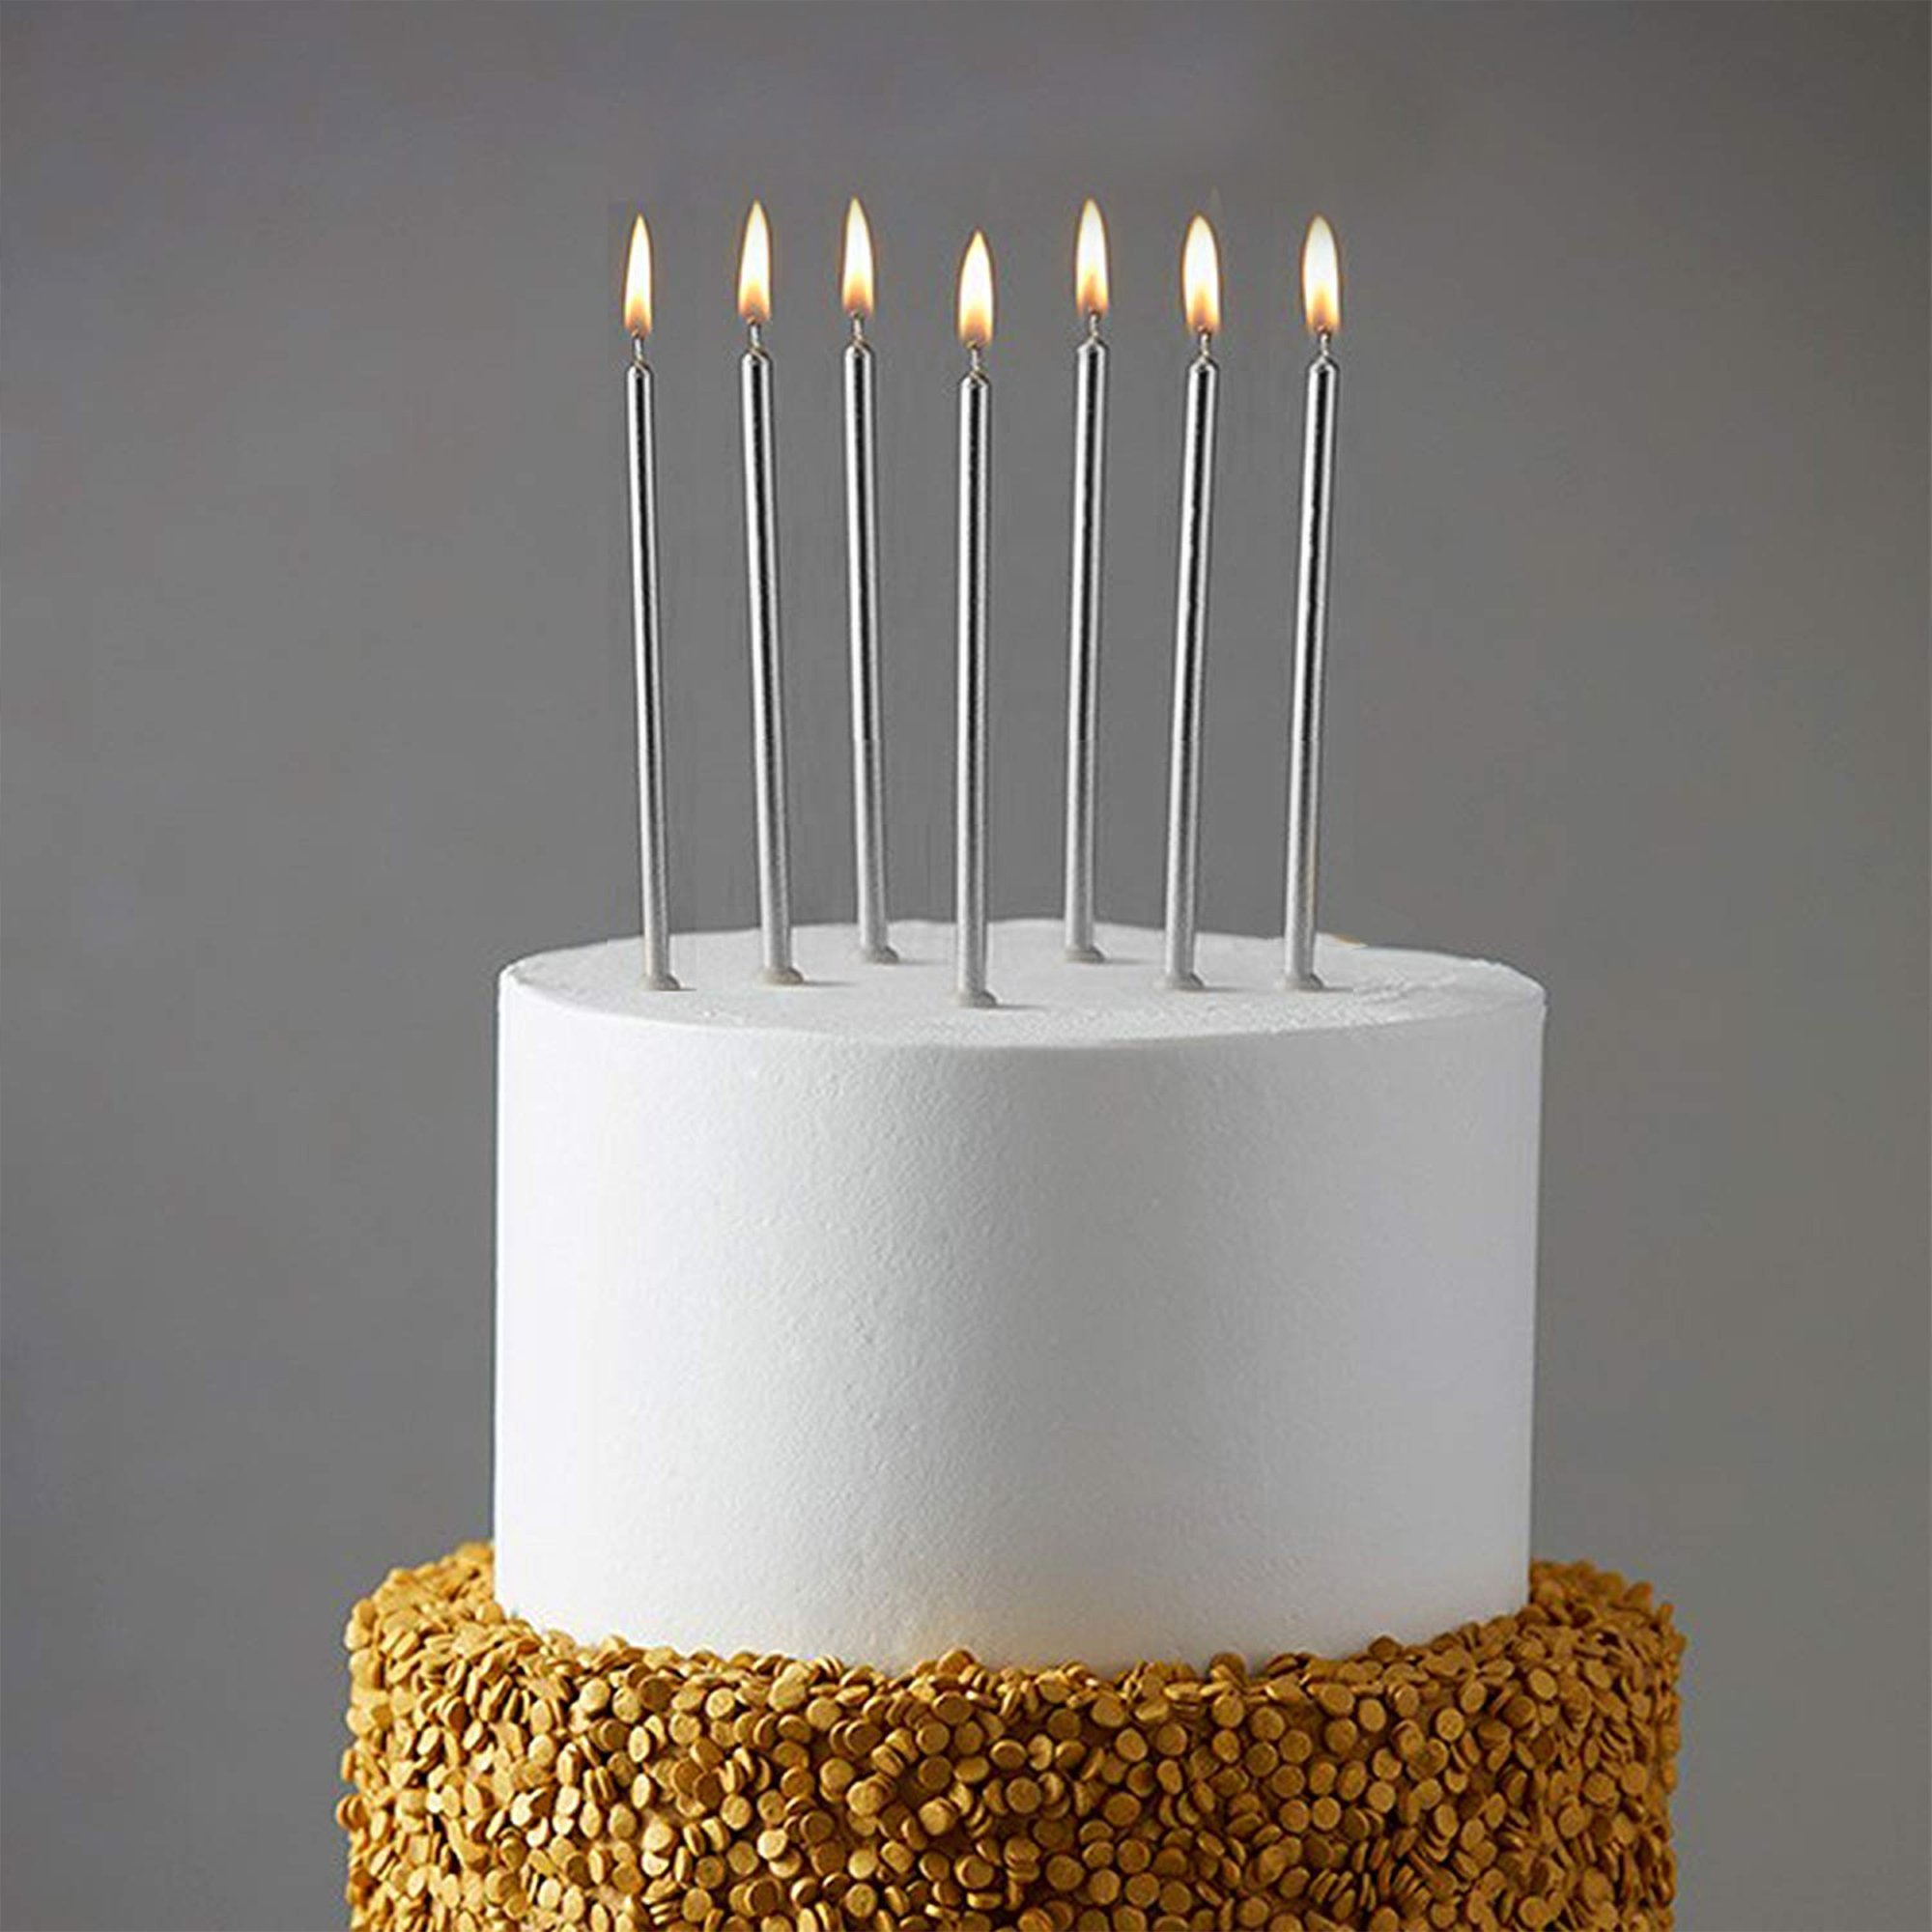 WEEPA 24 Count Party Long Thin Cake Candles Metallic Birthday Candles in Holders for Birthday Cakes Decorations, Silver